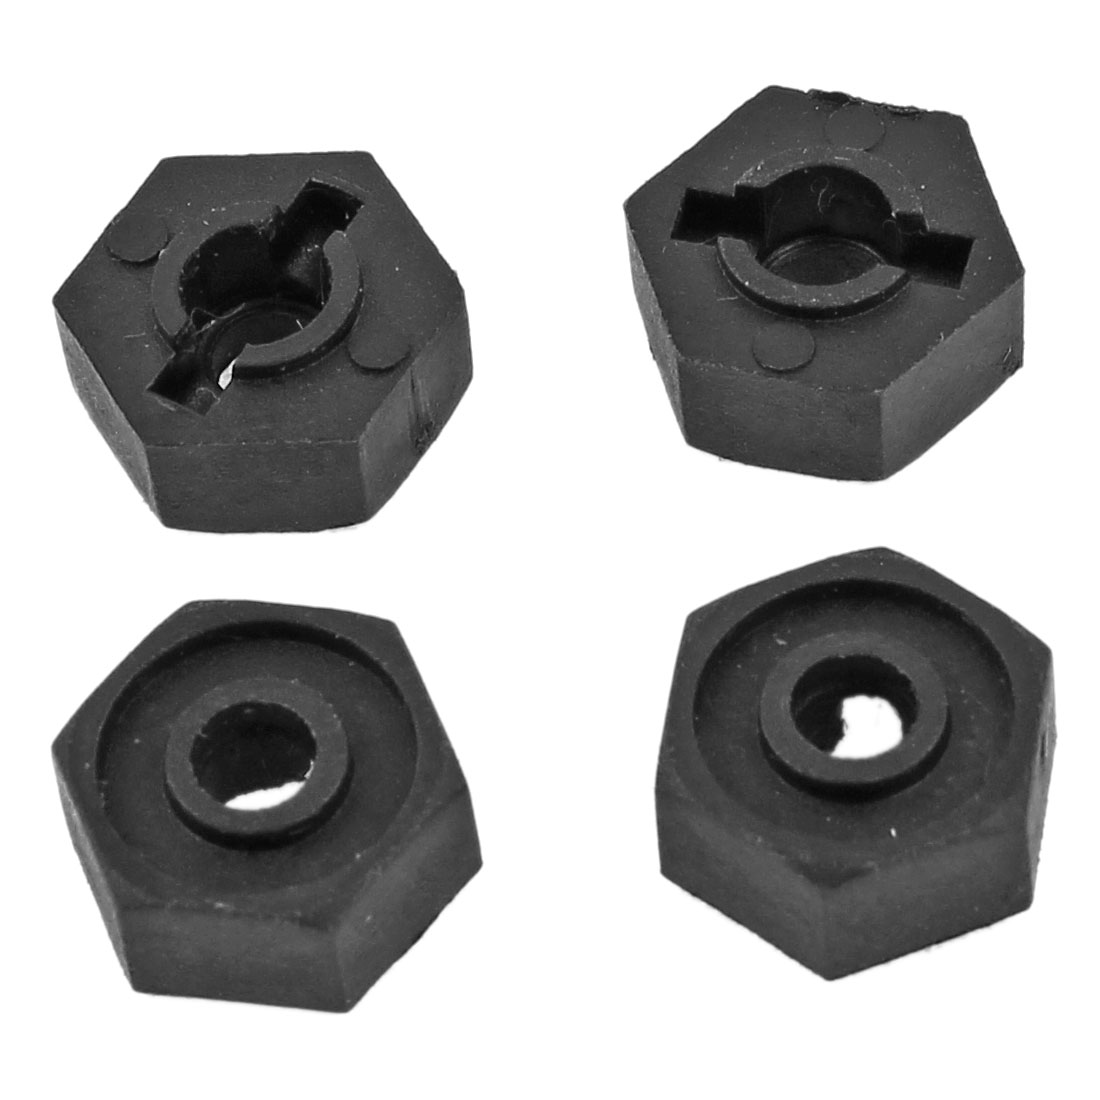 4Pcs 02100 Black Plastic Wheel Hex 12mm Dia Mount for RC 1/10 Car